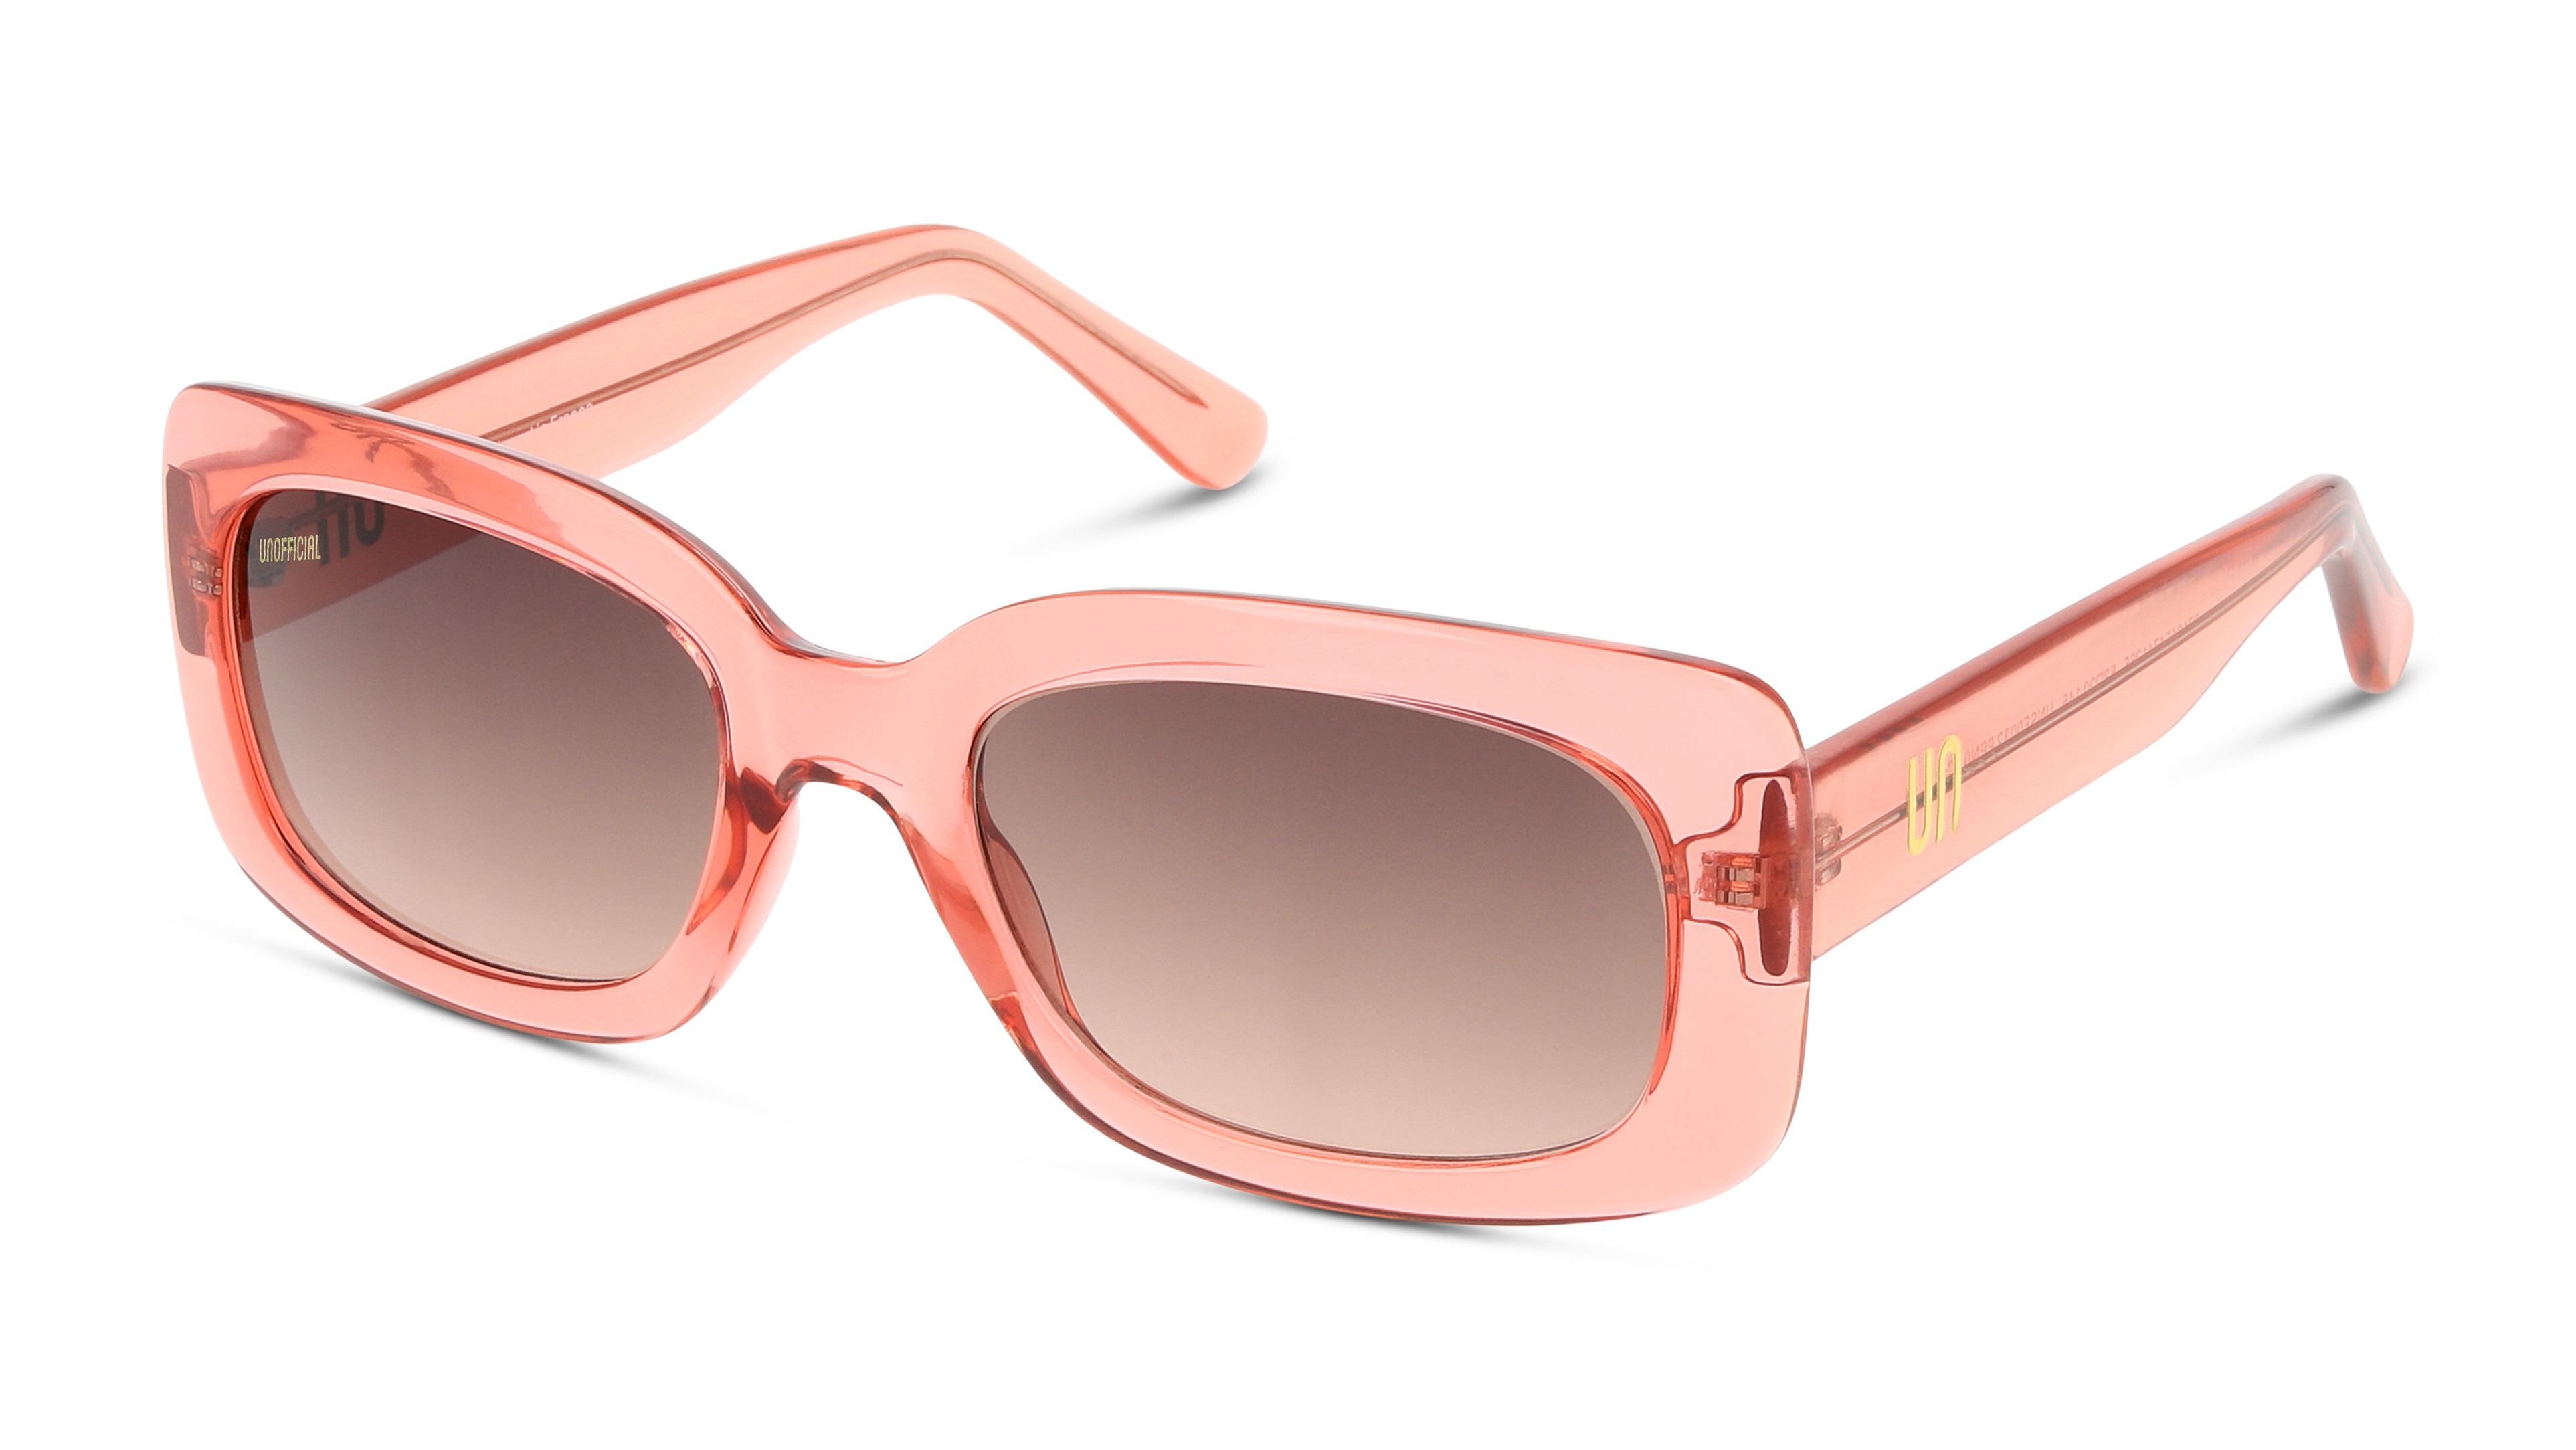 8719154741265-angle-03-unofficial-unsf0032-eyewear-pink-brown